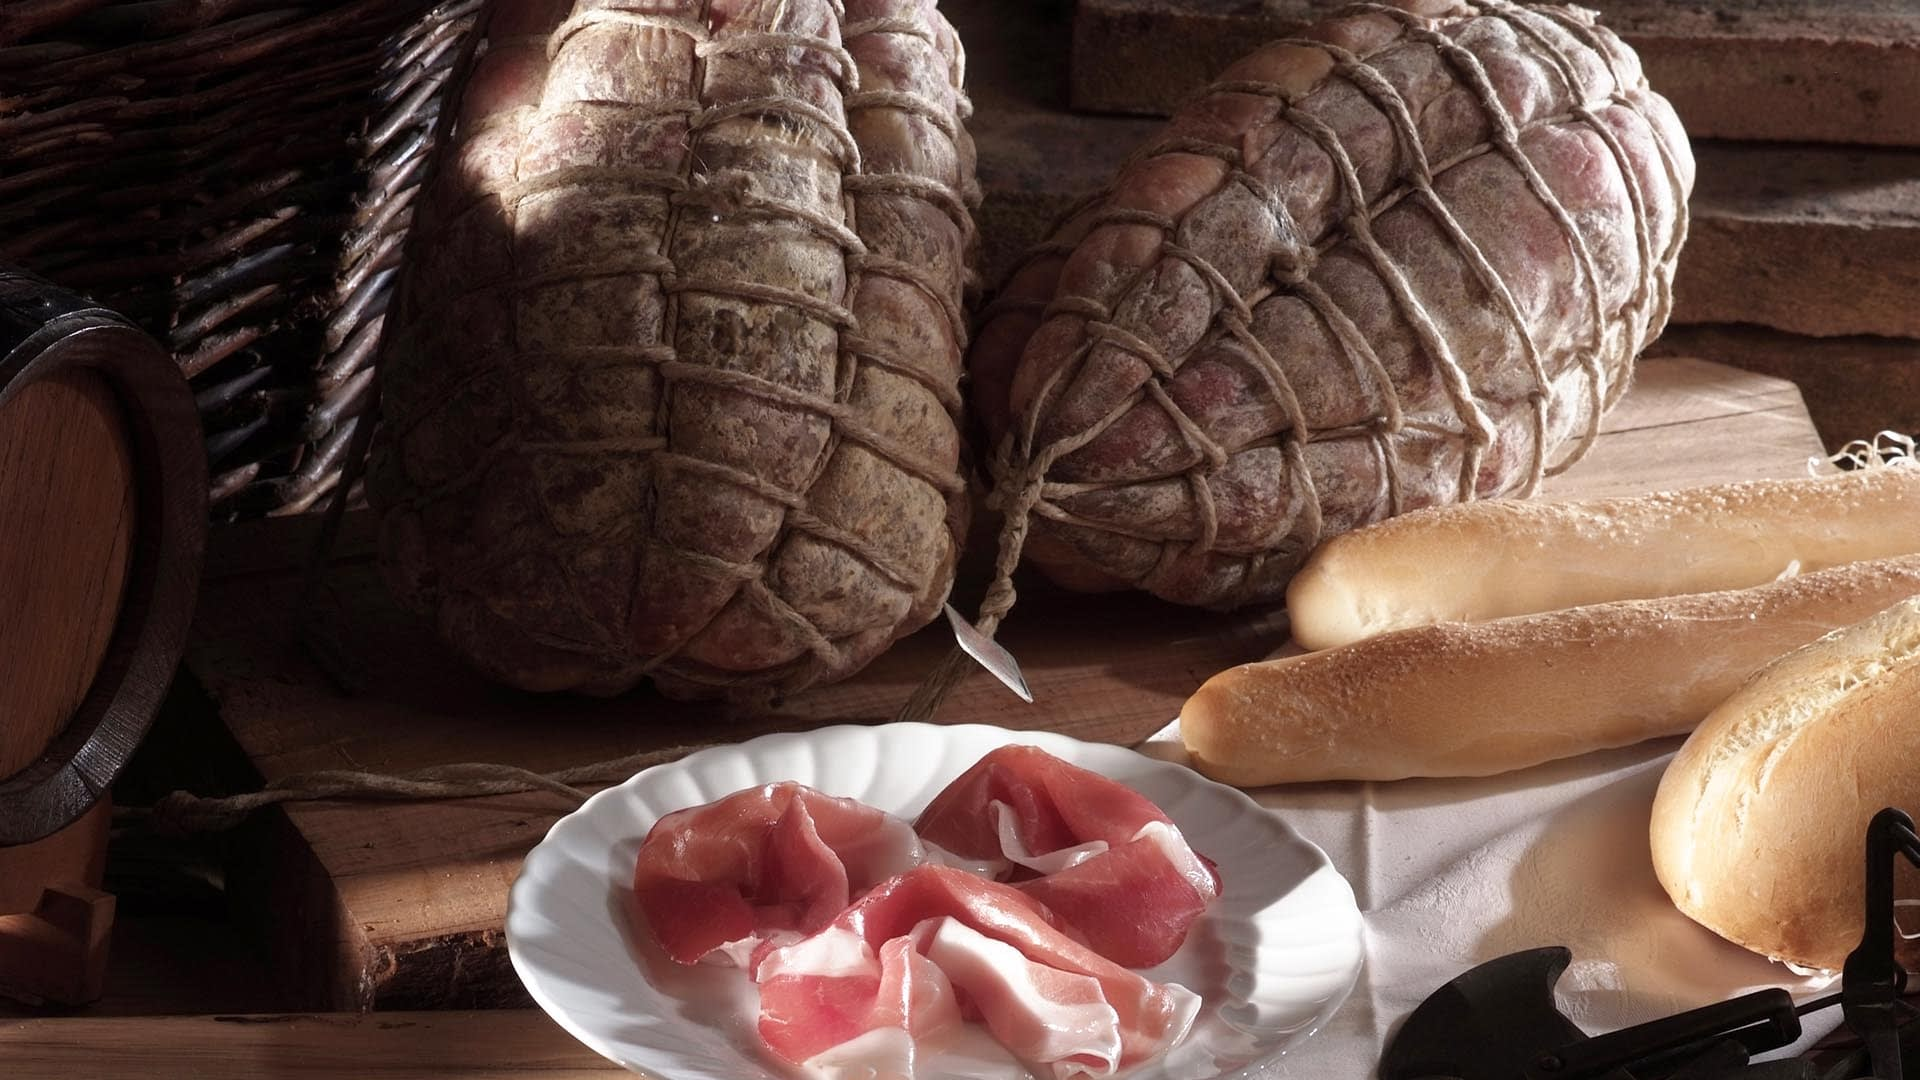 CULATELLO vs CULATTA